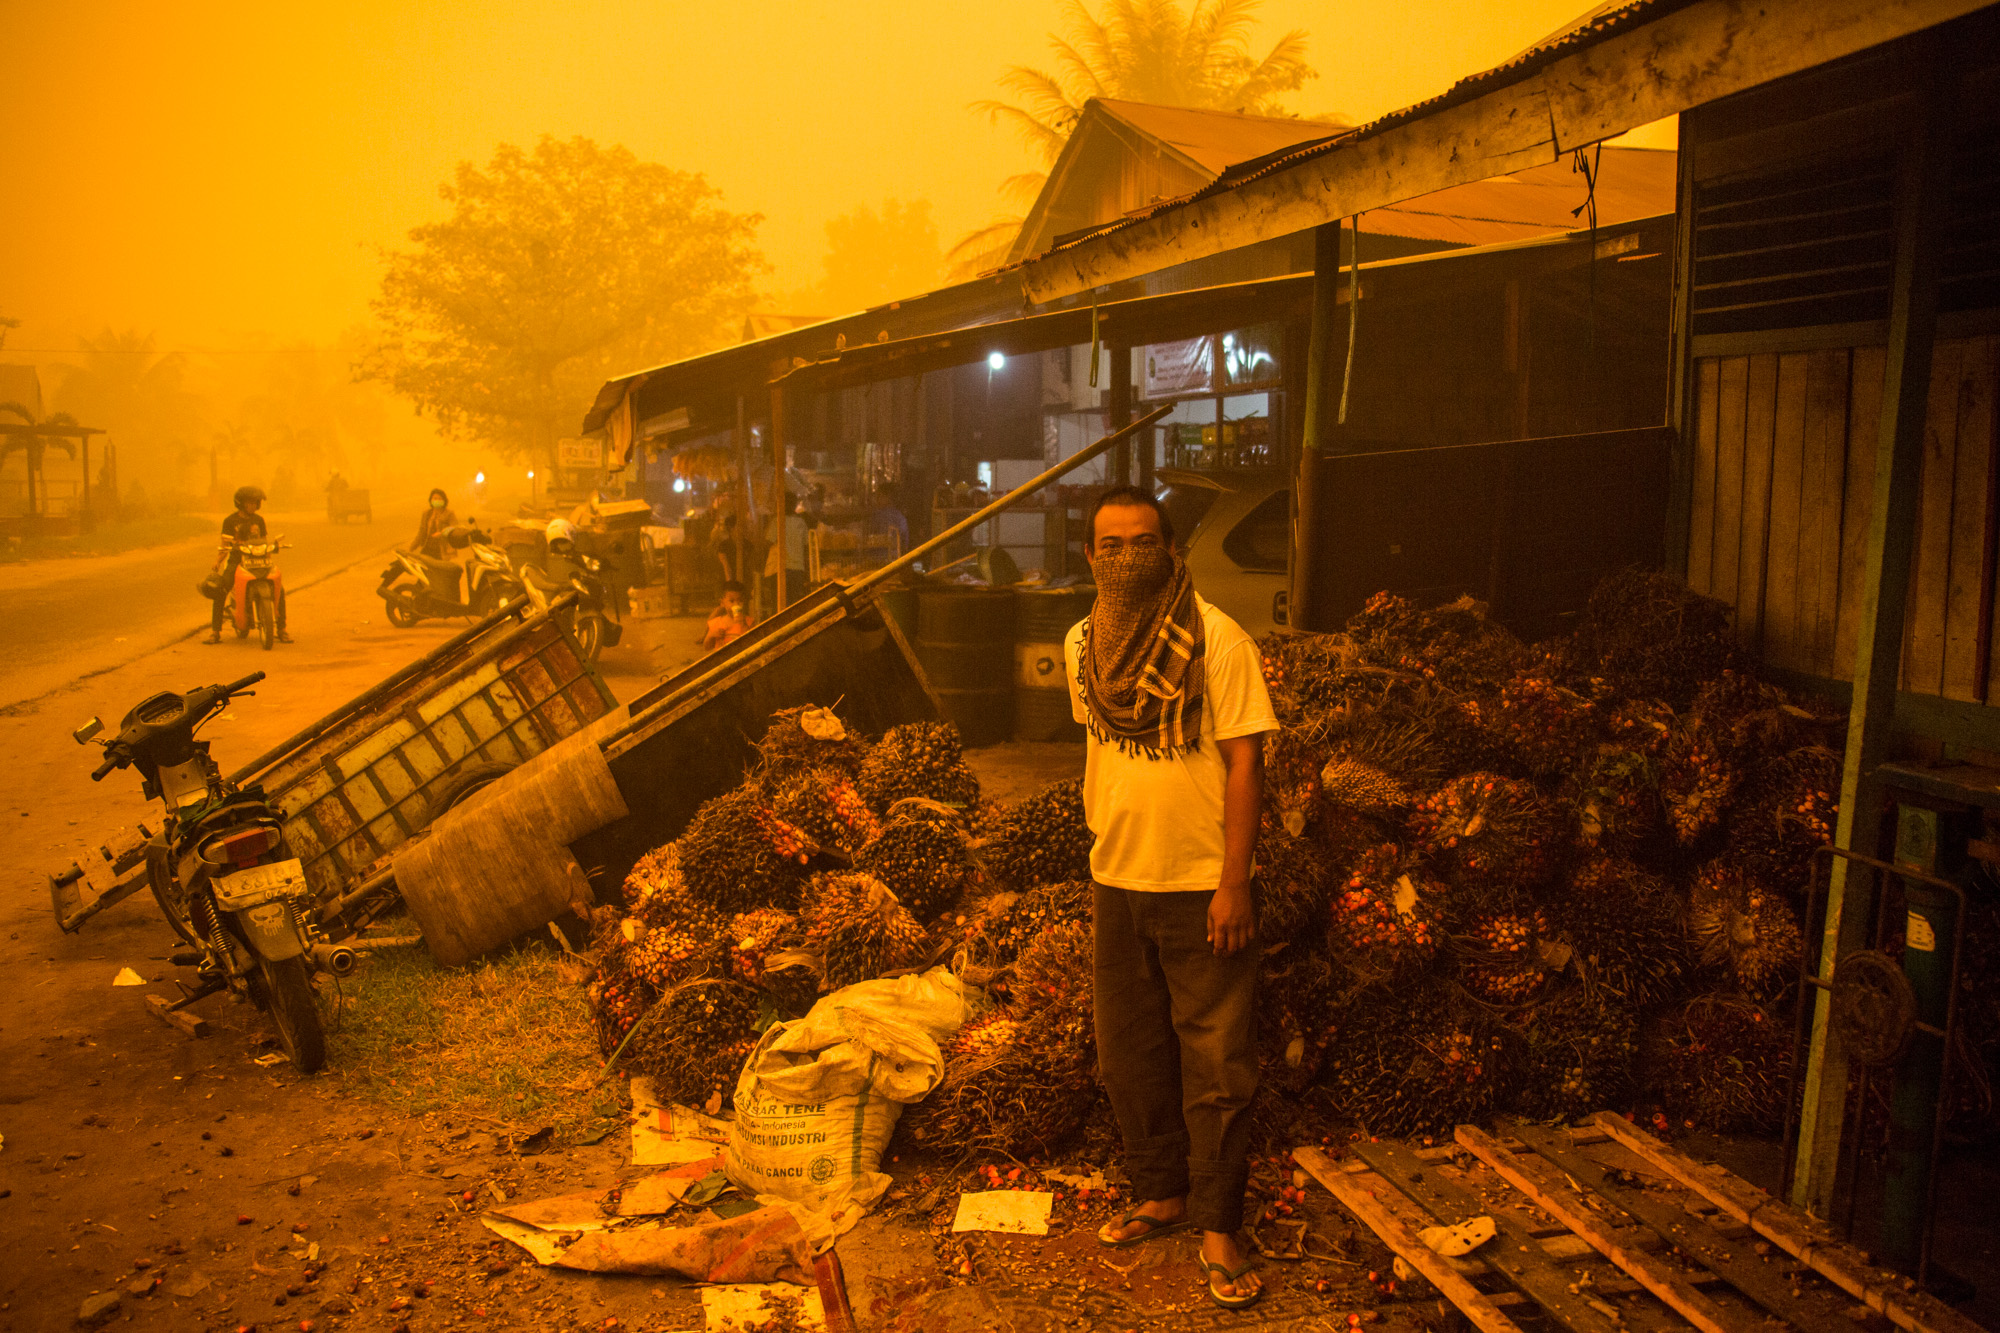 A Palangkaraya resident stands before a pile of palm oil fresh fruit bunches in at the height of last year's fire and haze crisis. The orange color is real. Photo by Bjorn Vaughn